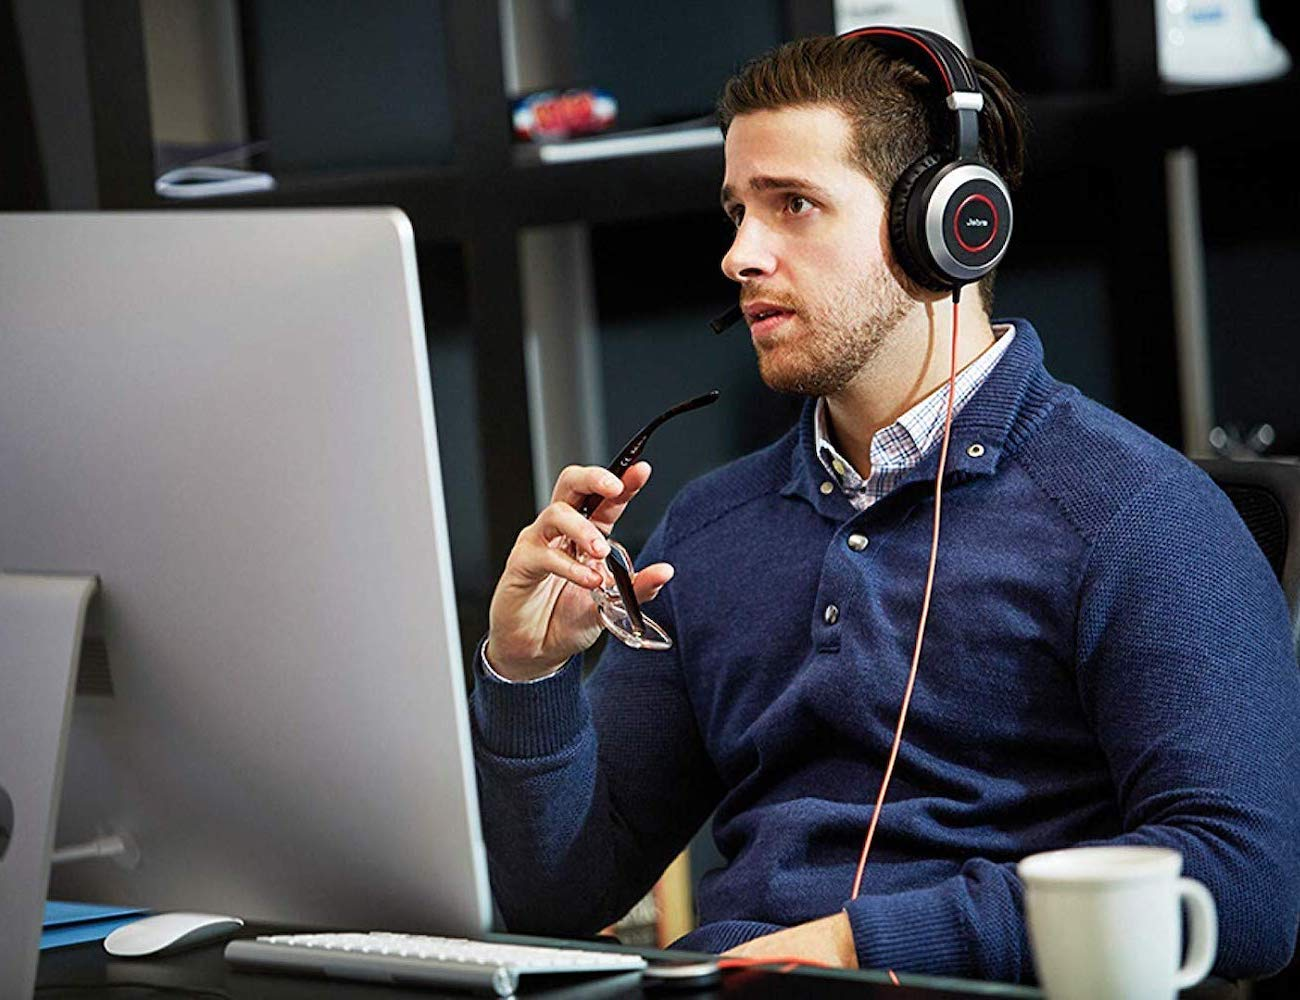 Jabra Evolve 80 Professional Stereo Headset gets rid of distractions